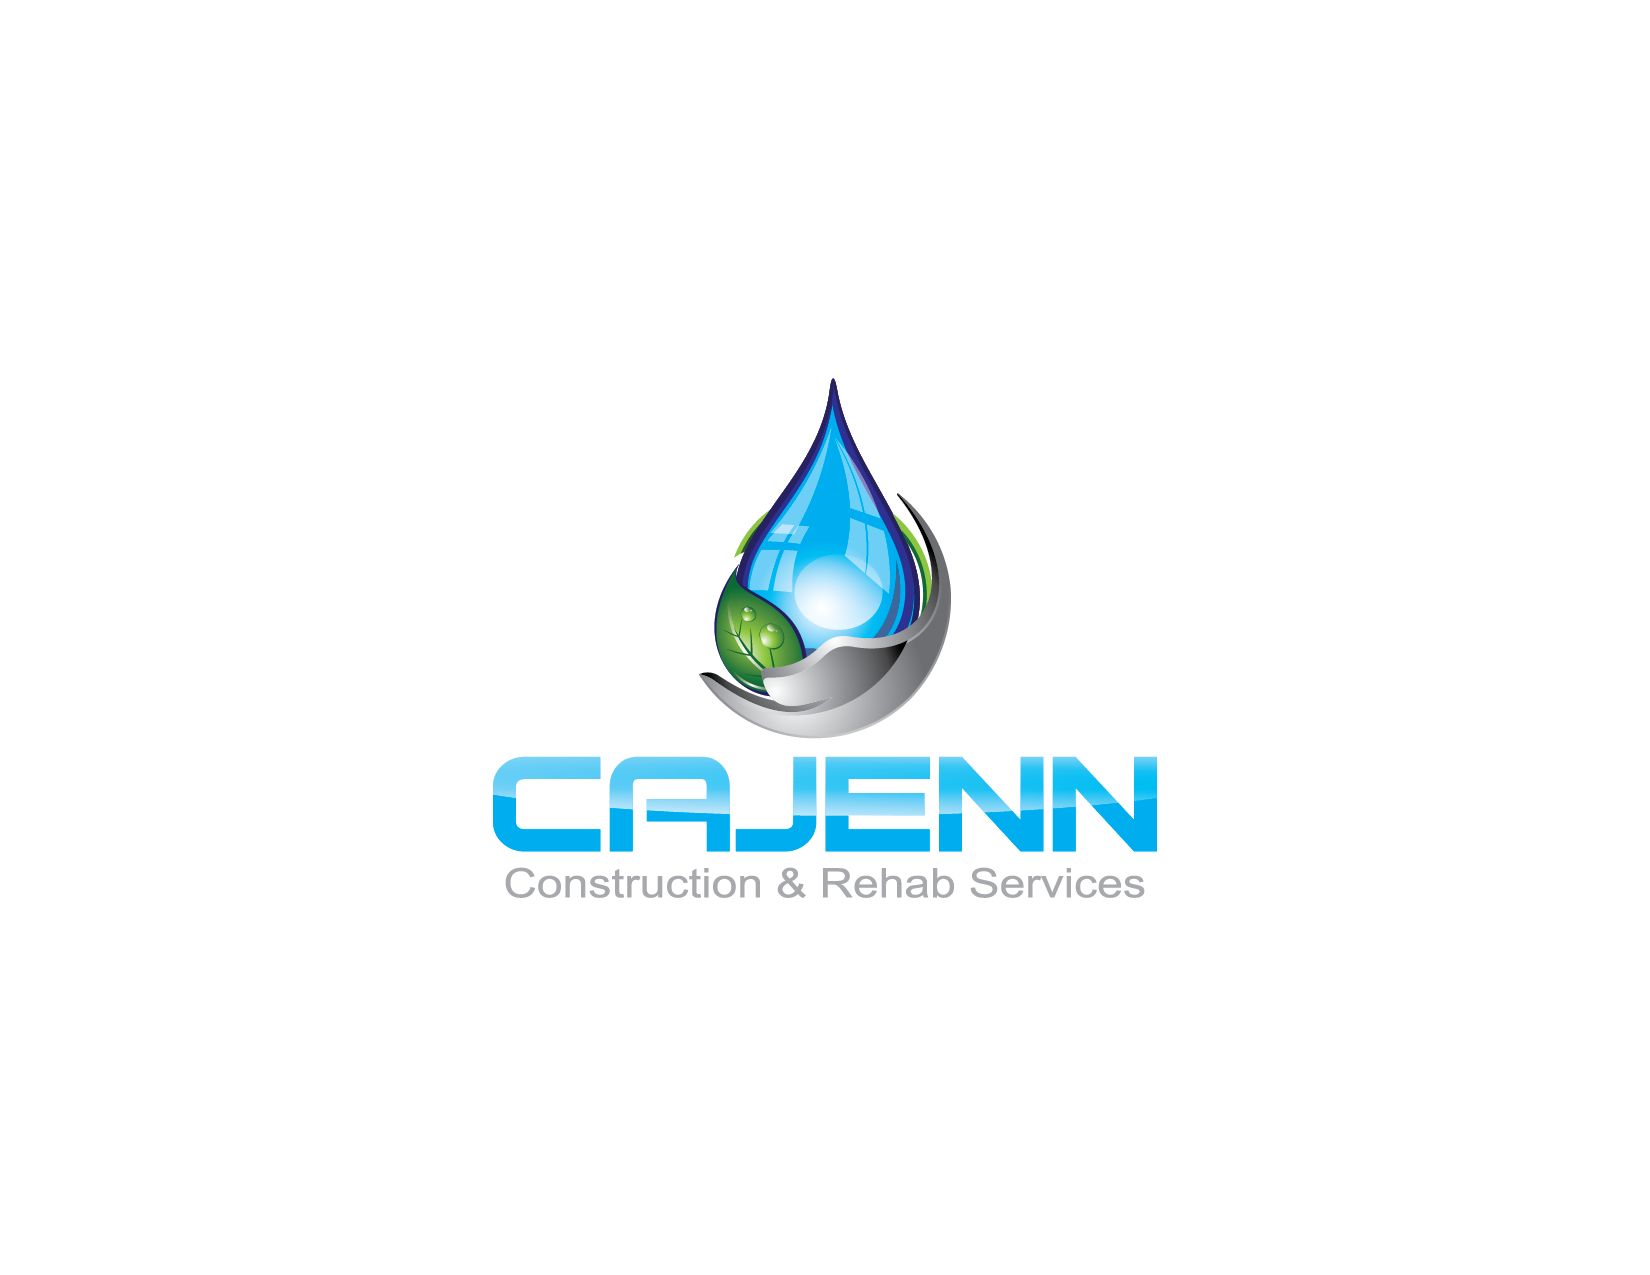 Logo Design by Yansen Yansen - Entry No. 217 in the Logo Design Contest New Logo Design for CaJenn Construction & Rehab Services.